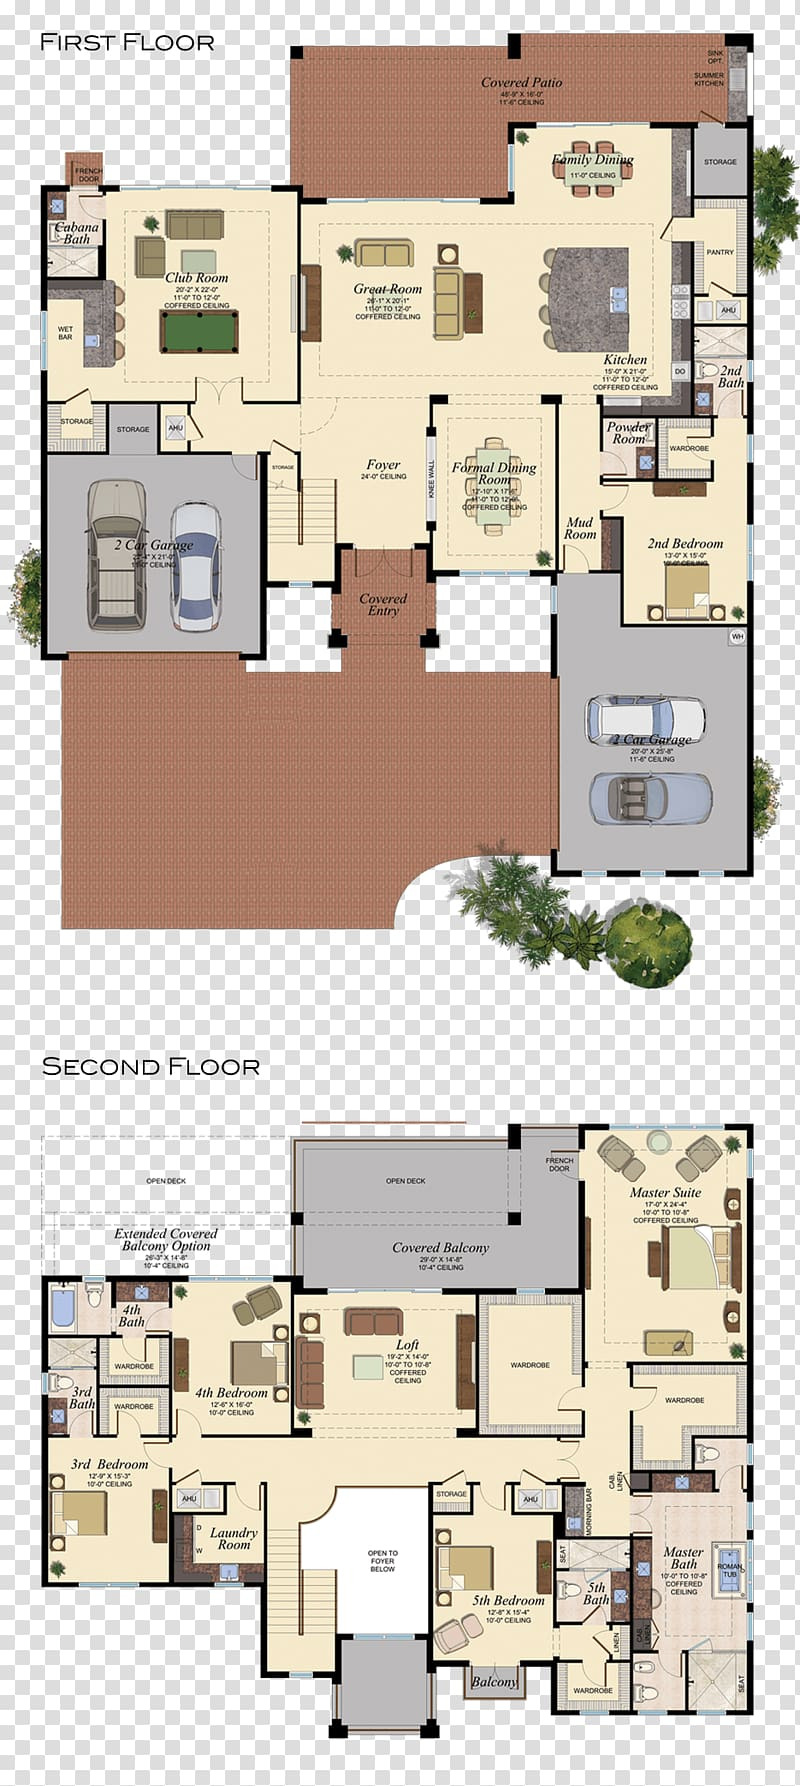 House Plans with Interior Pictures New Floor Plan House Plan Interior Design Services Architecture